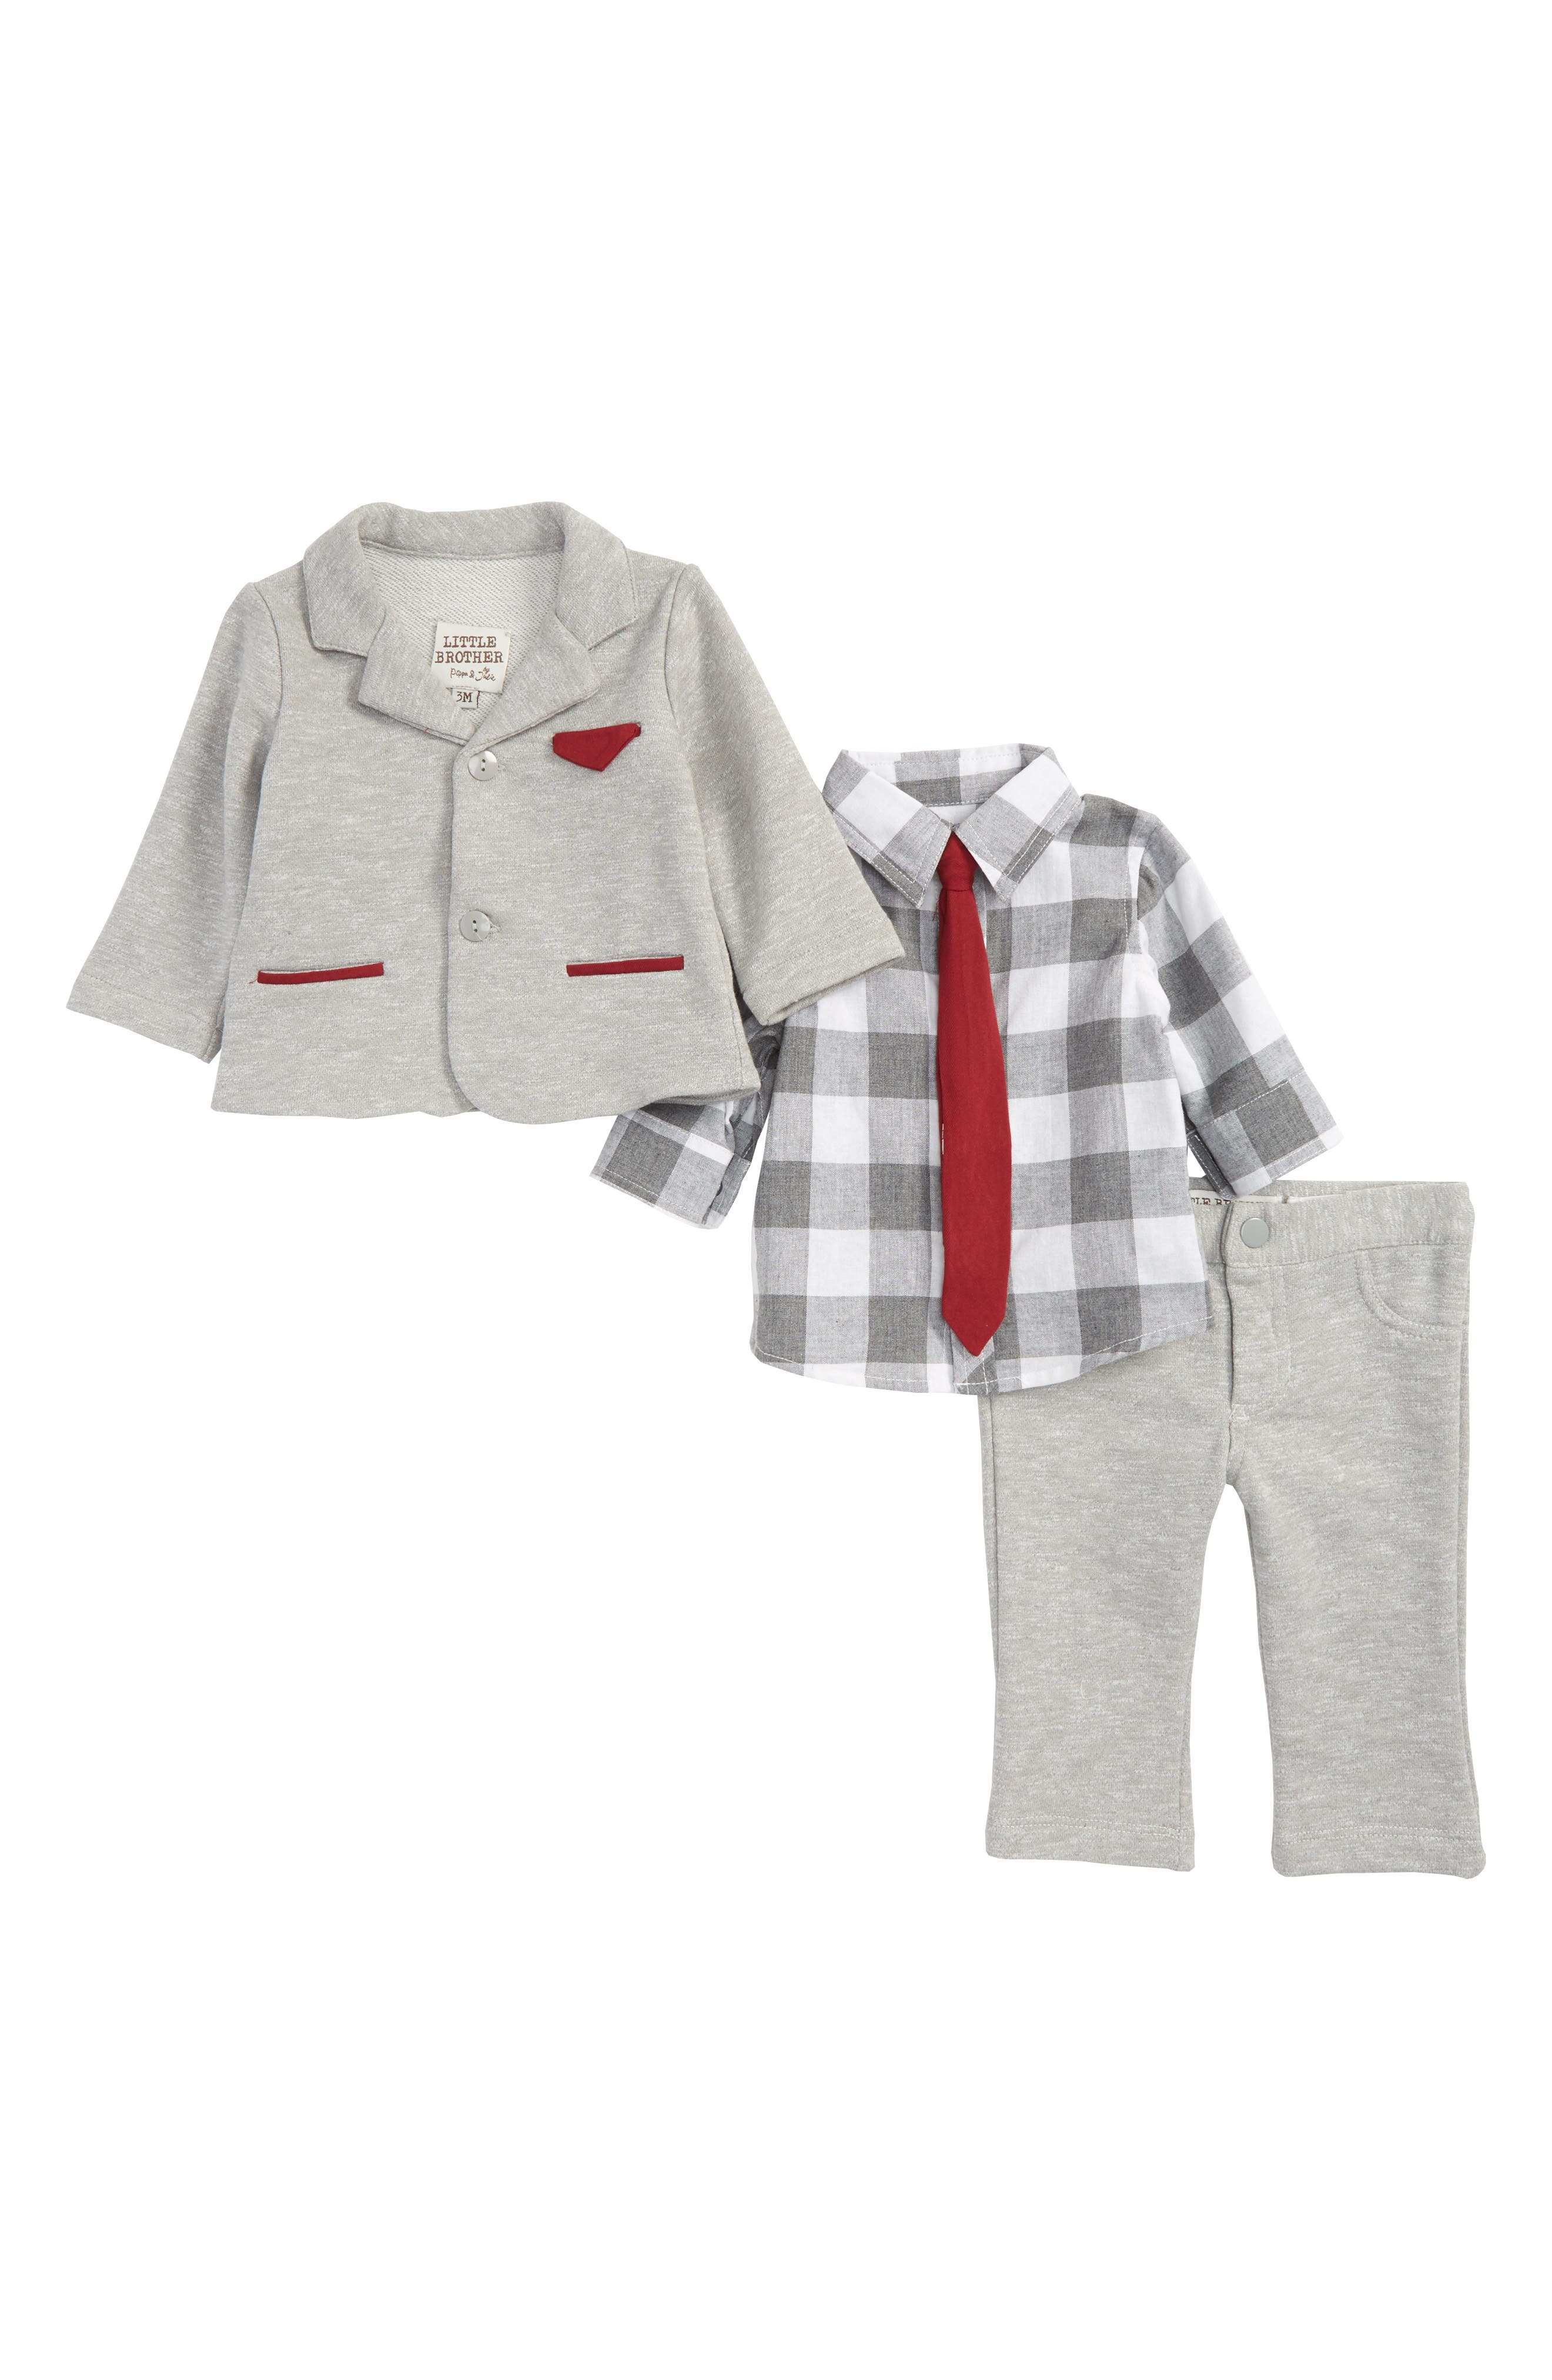 Little Brother by Pippa & Julie Dress Shirt, Jacket & Pants Set (Baby Boys)